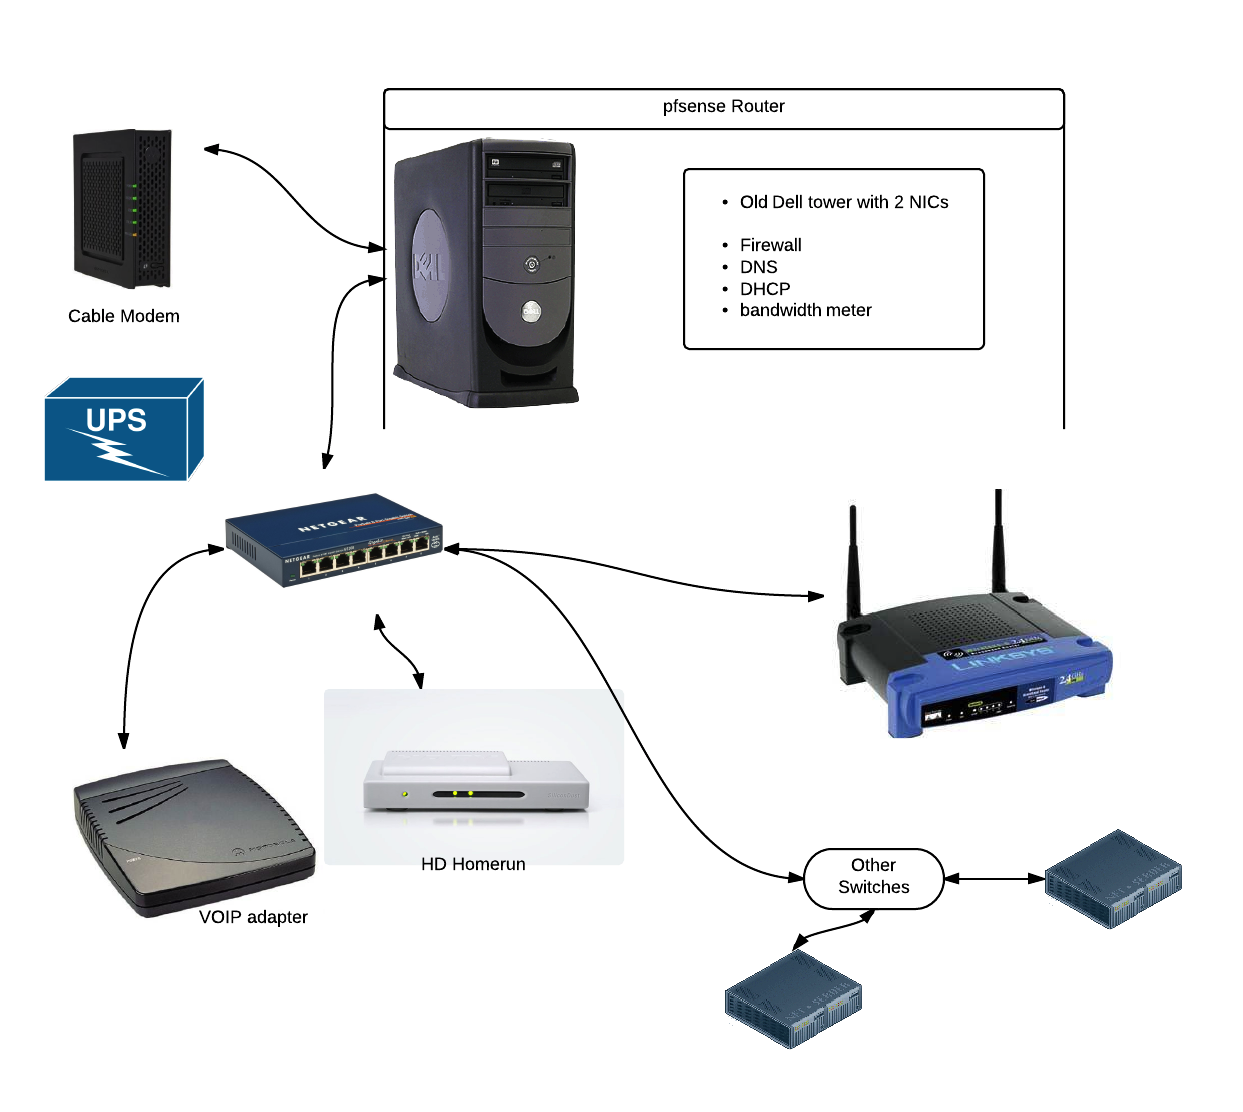 Home Networking Pfsense Motorola Cable Modems D Link Routers And Gigabit Switches Ht106 The Average Guy Network Cable Modem Modems Home Network